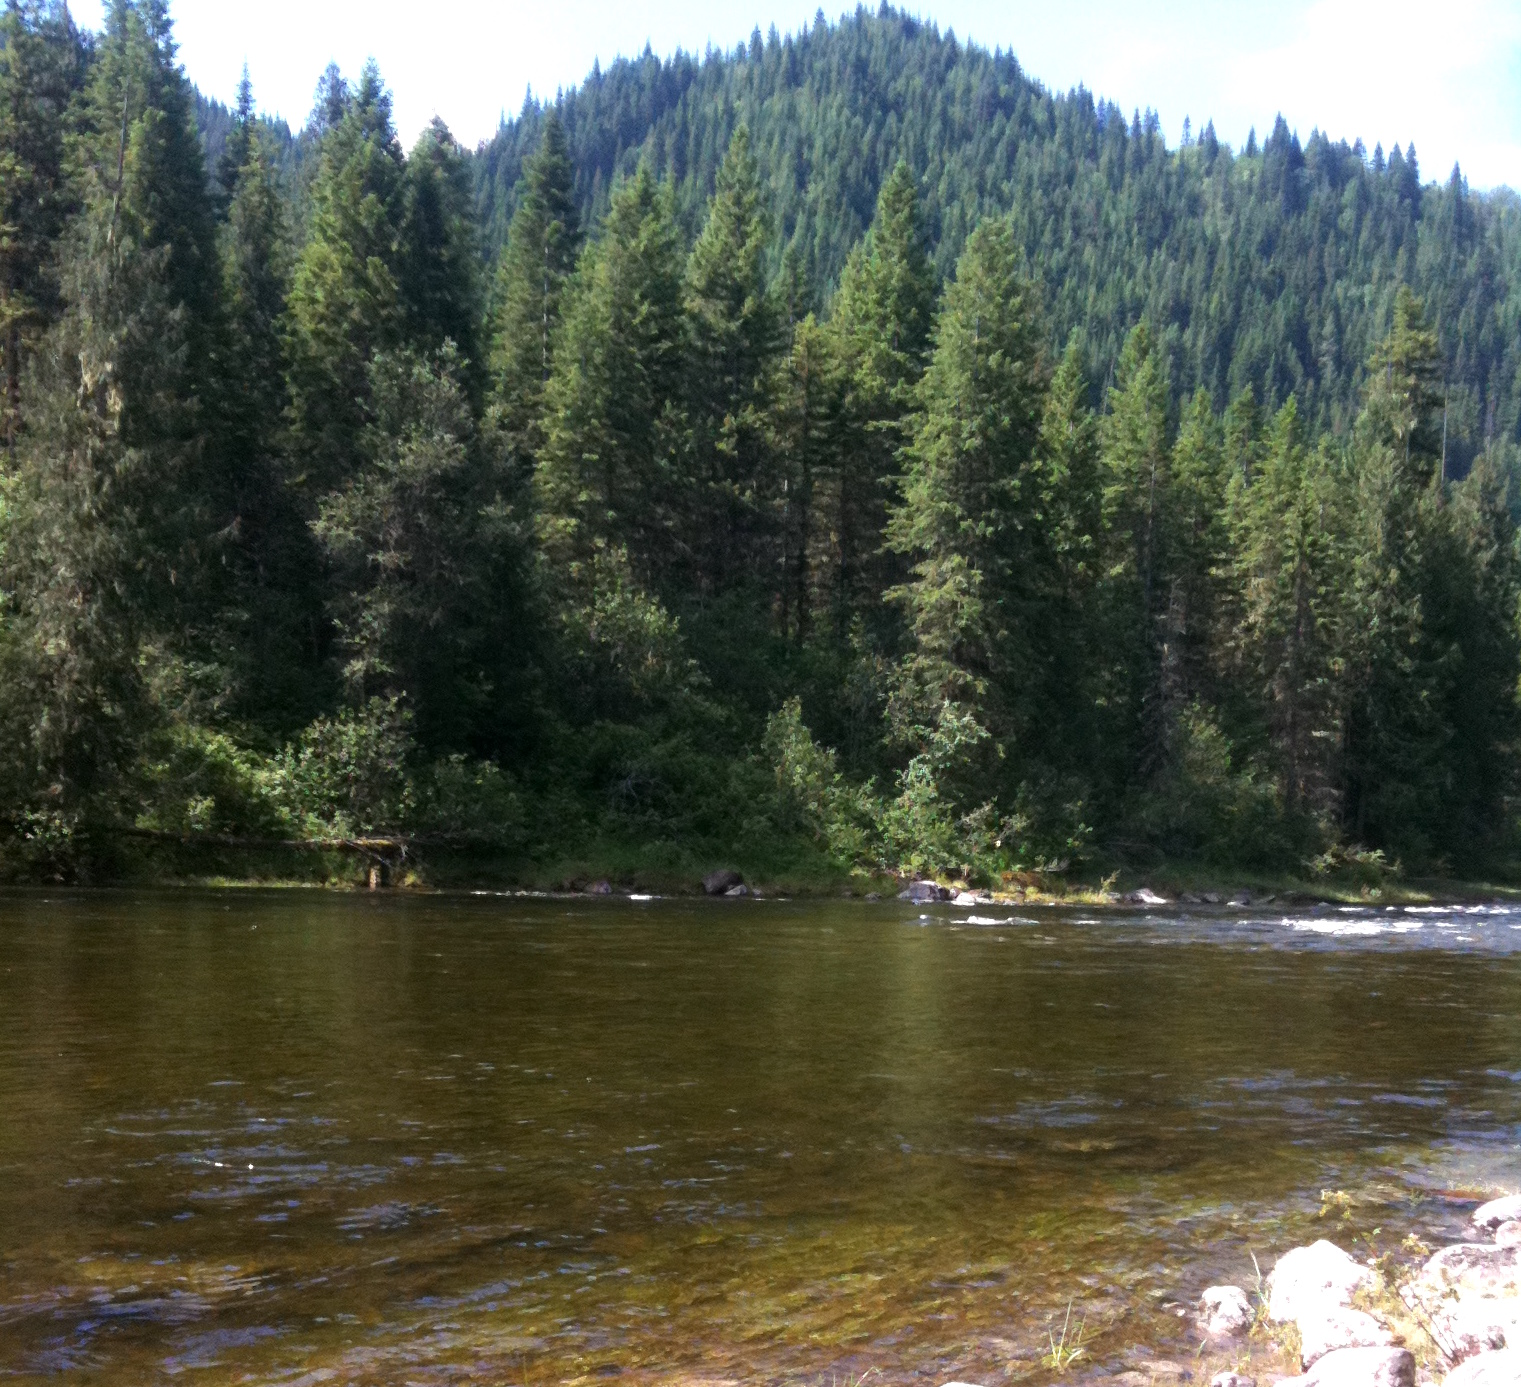 The Clearwater river